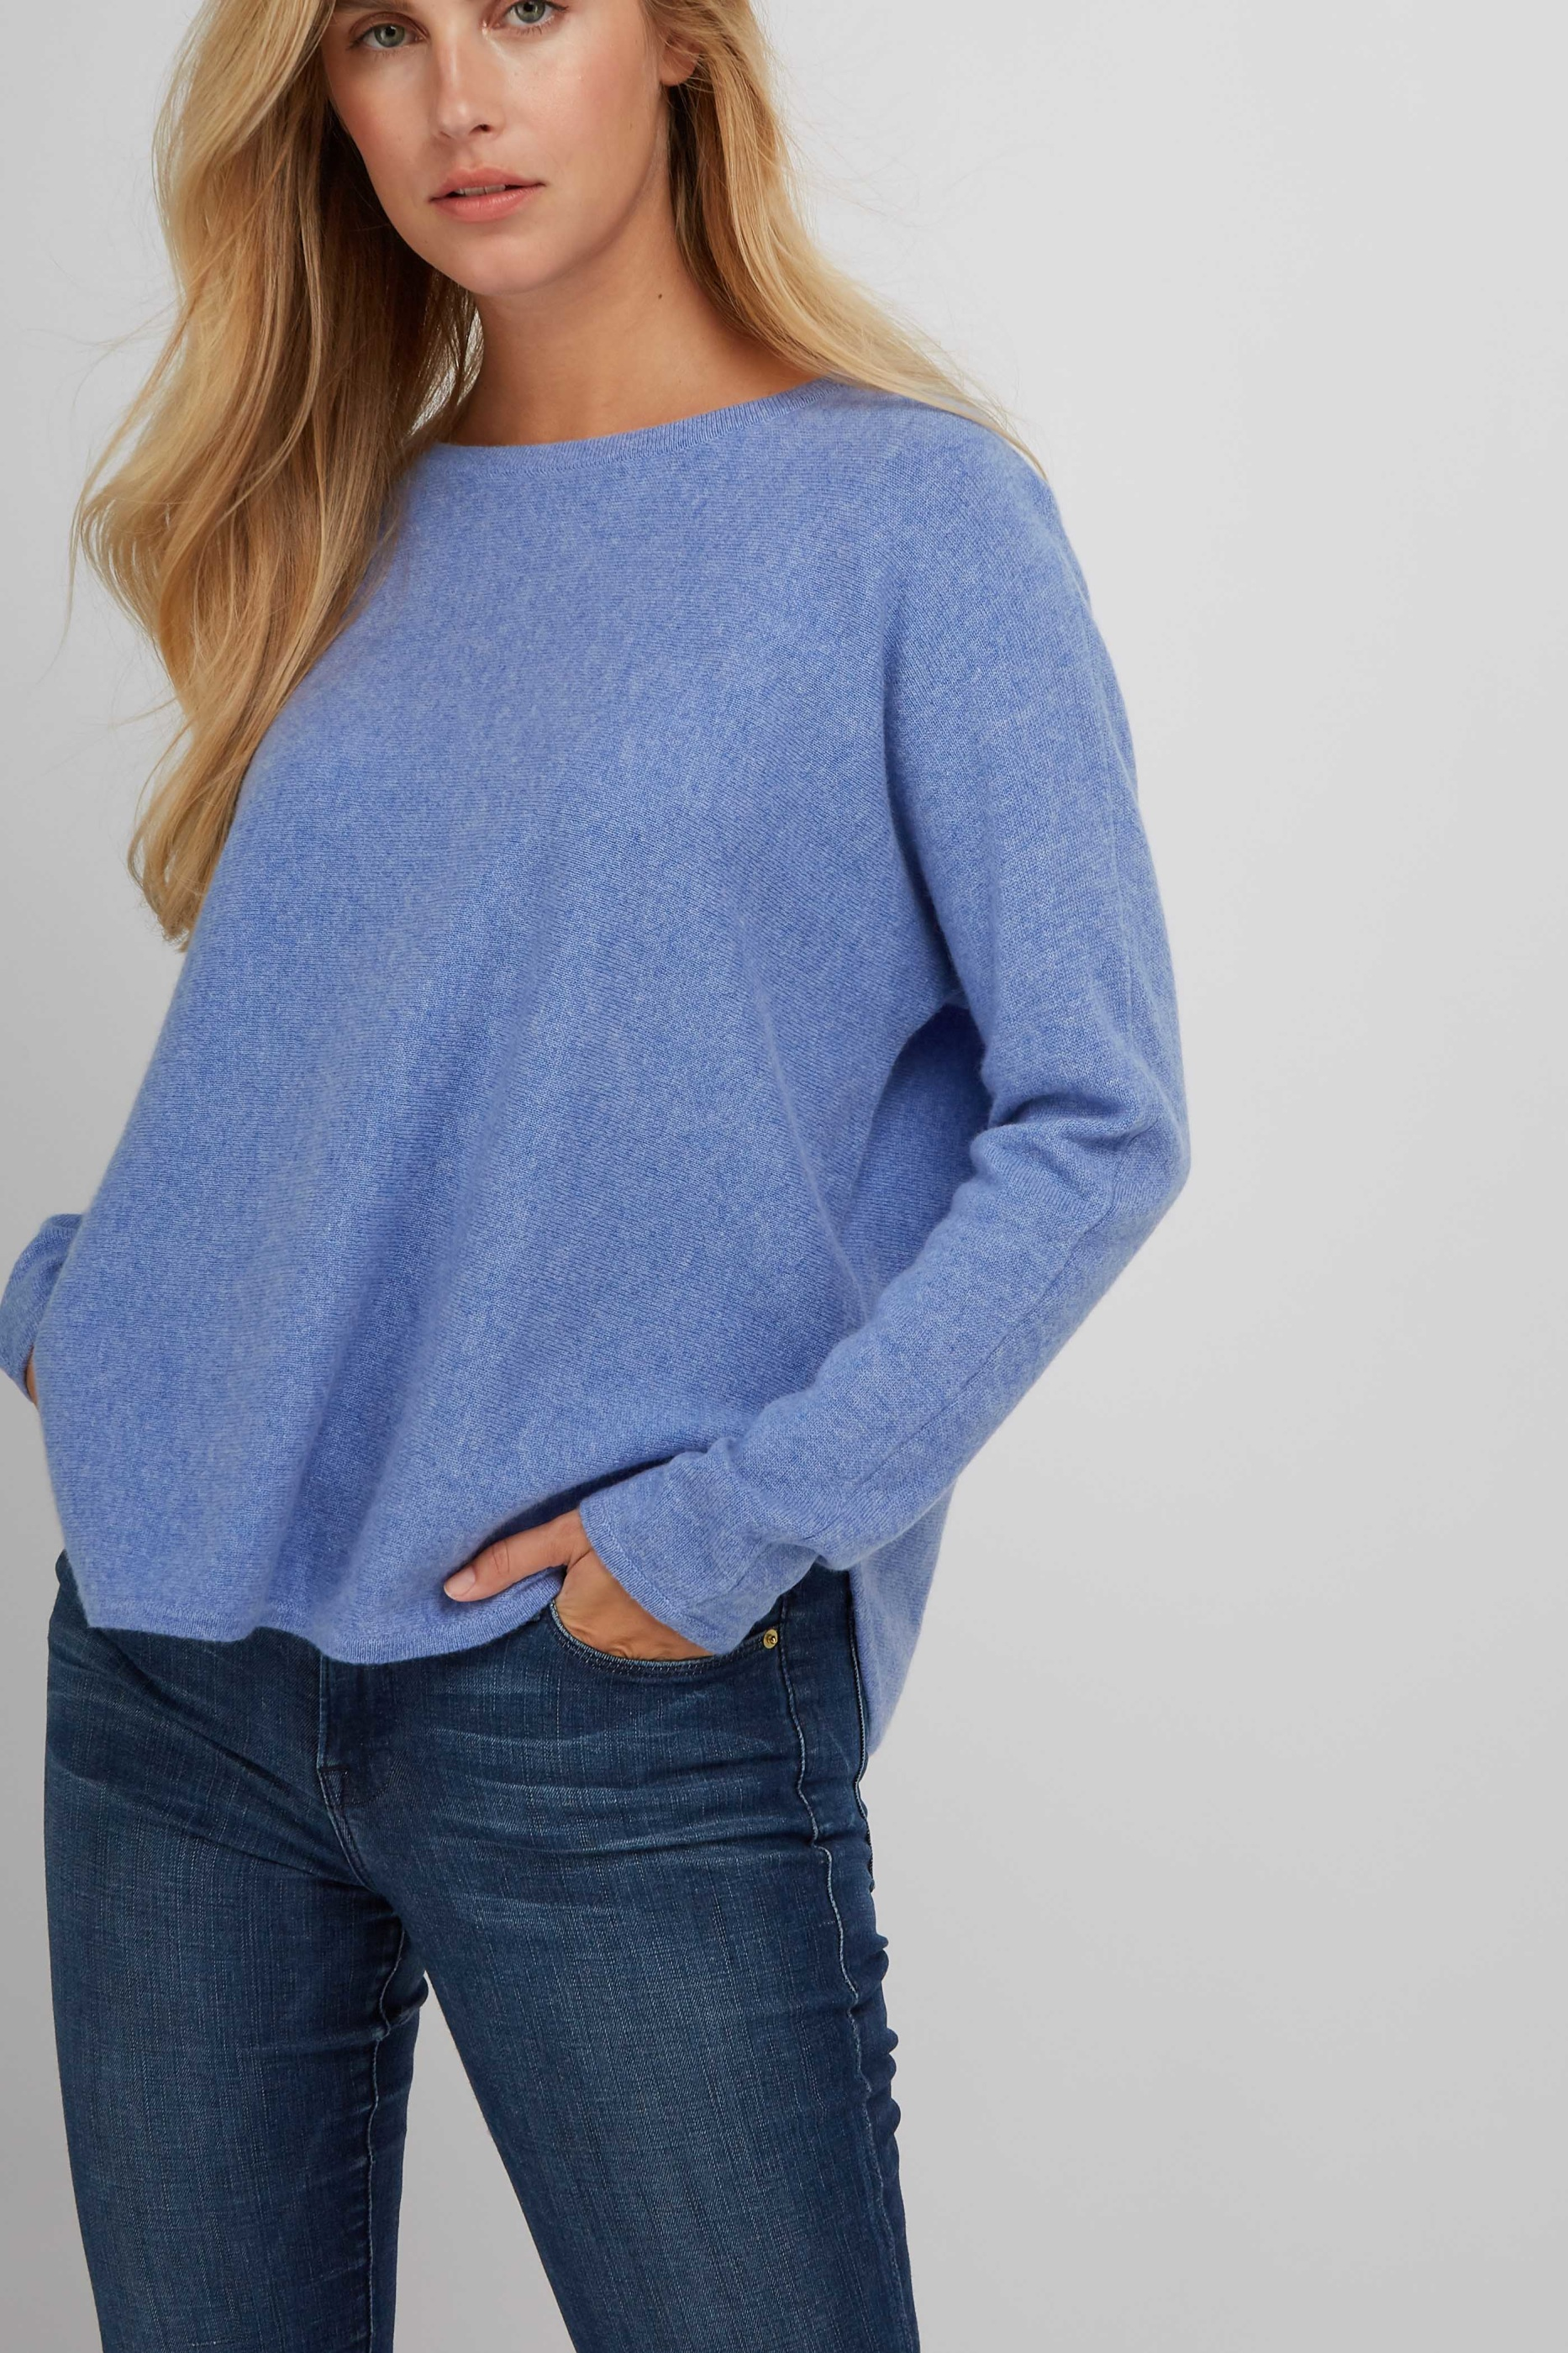 CurvedSweater_SkyBlue_3